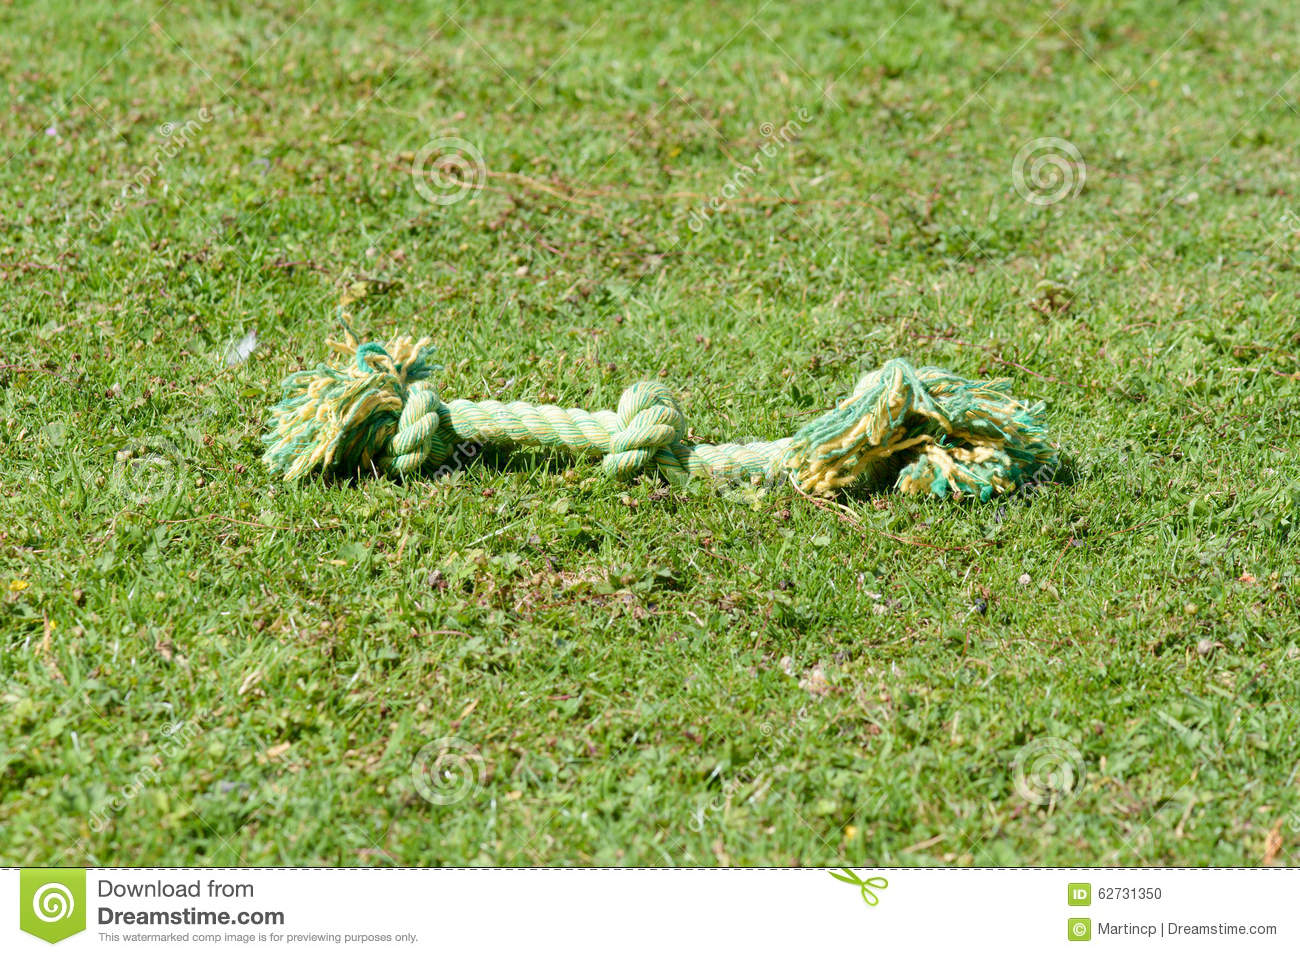 Dog rope tug toy on grass